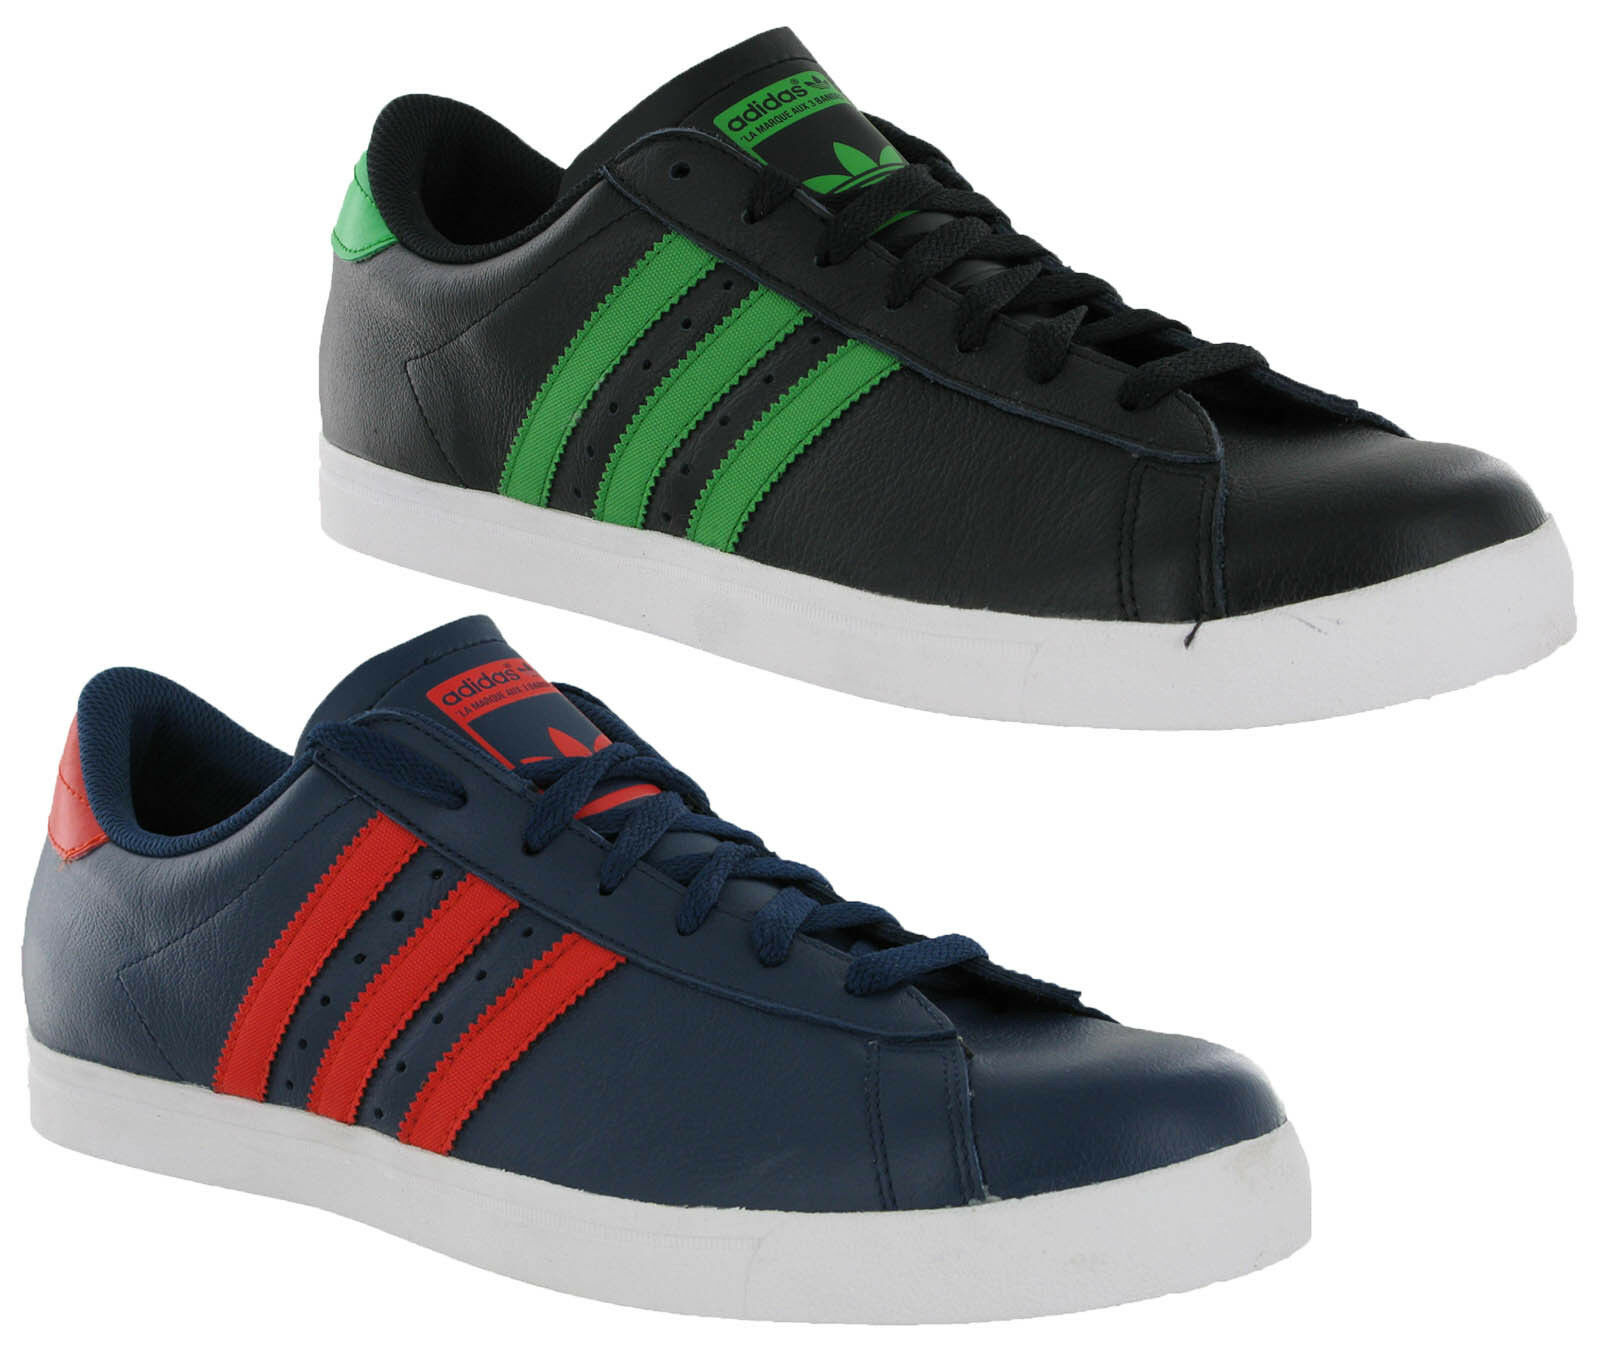 Adidas Original Greenstar Leather Lace Up Casual Fashion Mens Trainer Shoe